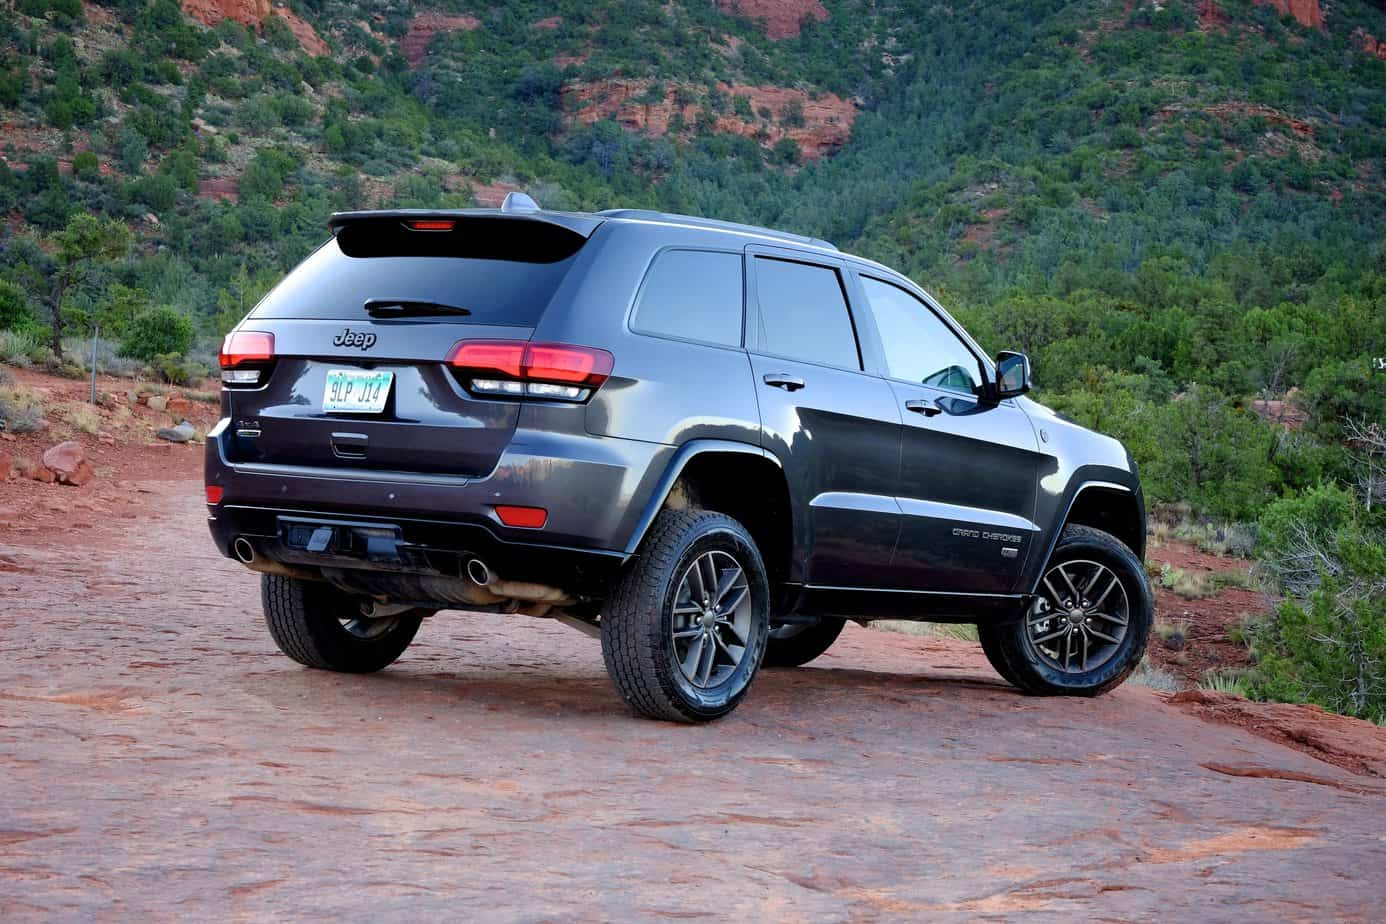 Road and Trail Tested: 75th Anniversary Jeep Grand Cherokee